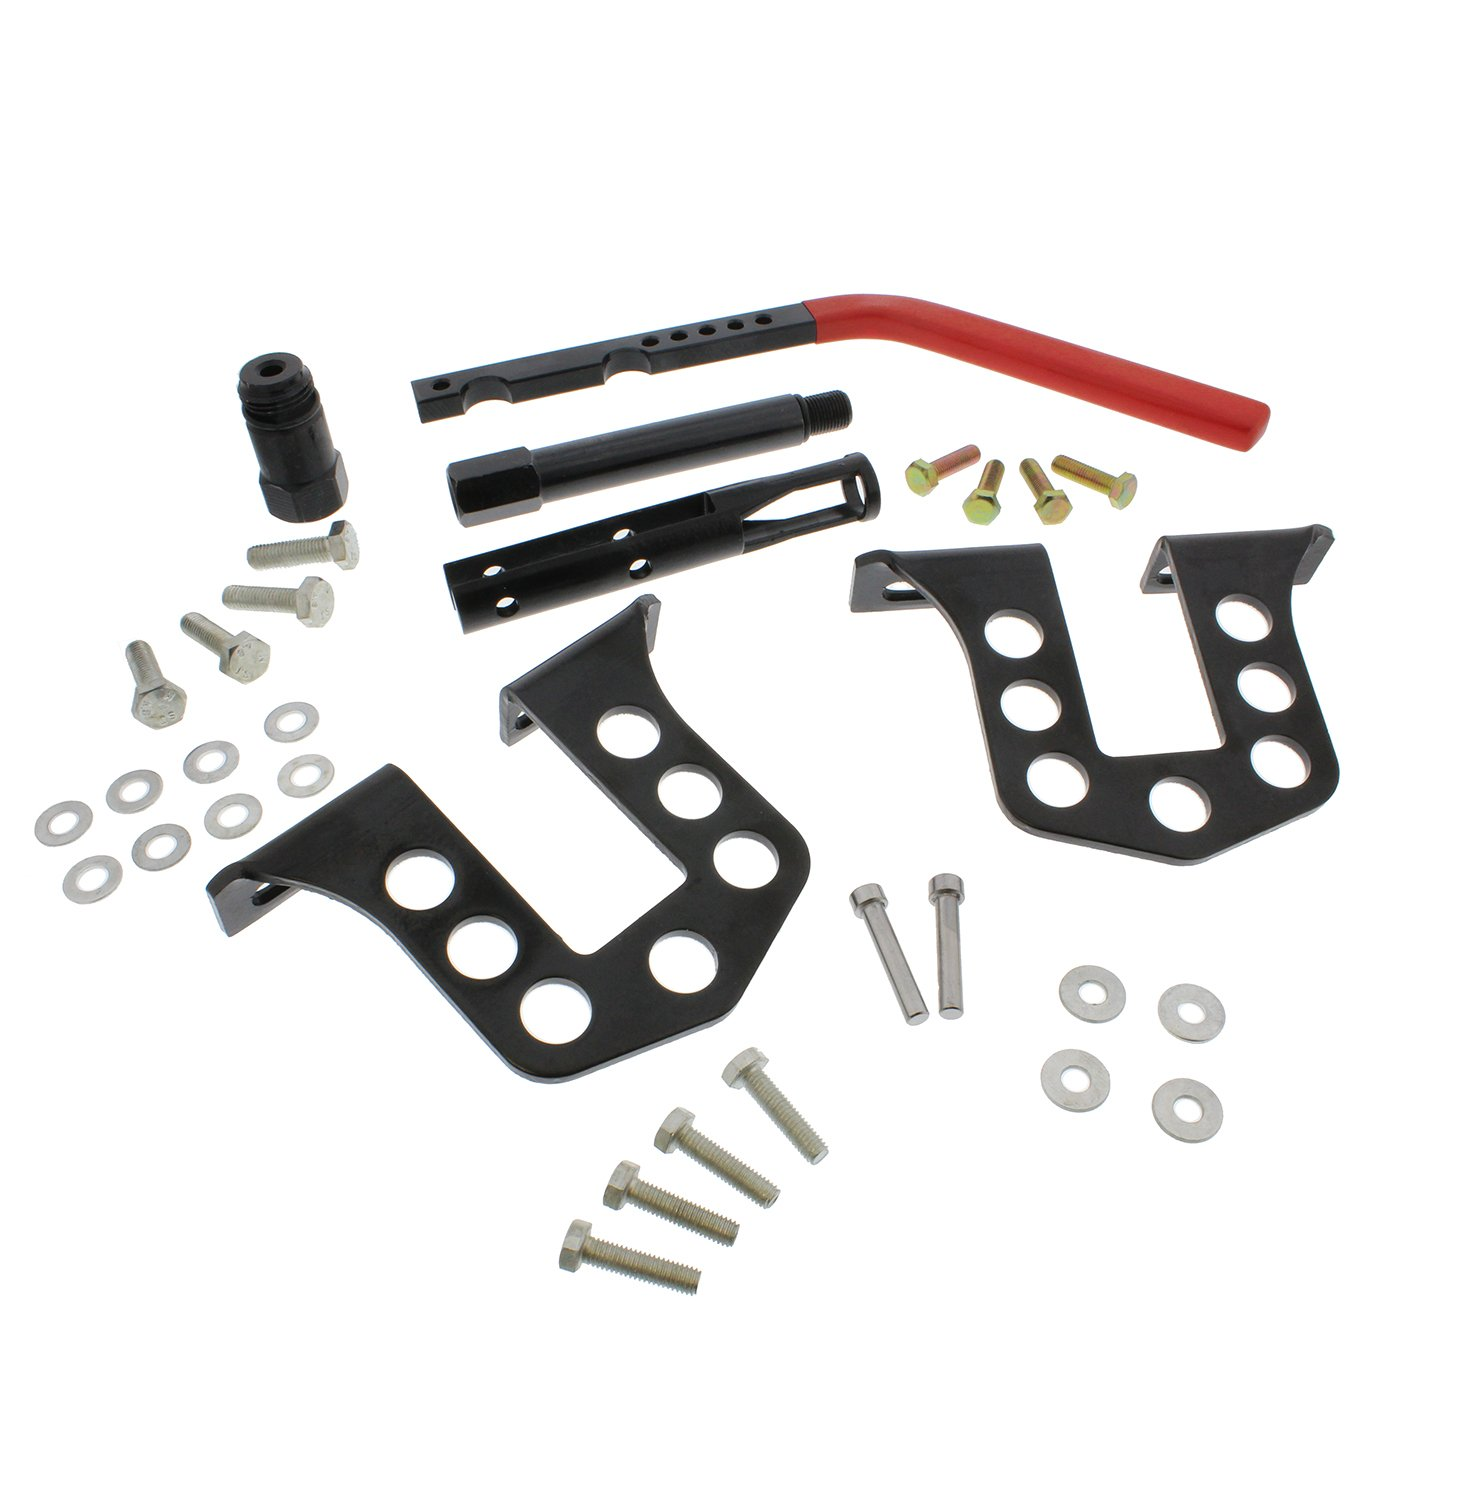 ABN Automotive Engine Overhead Valve Spring Tool Set – Remover, Installer, Compressor Kit for Ford, BMW, Honda, Toyota, VW by ABN (Image #3)